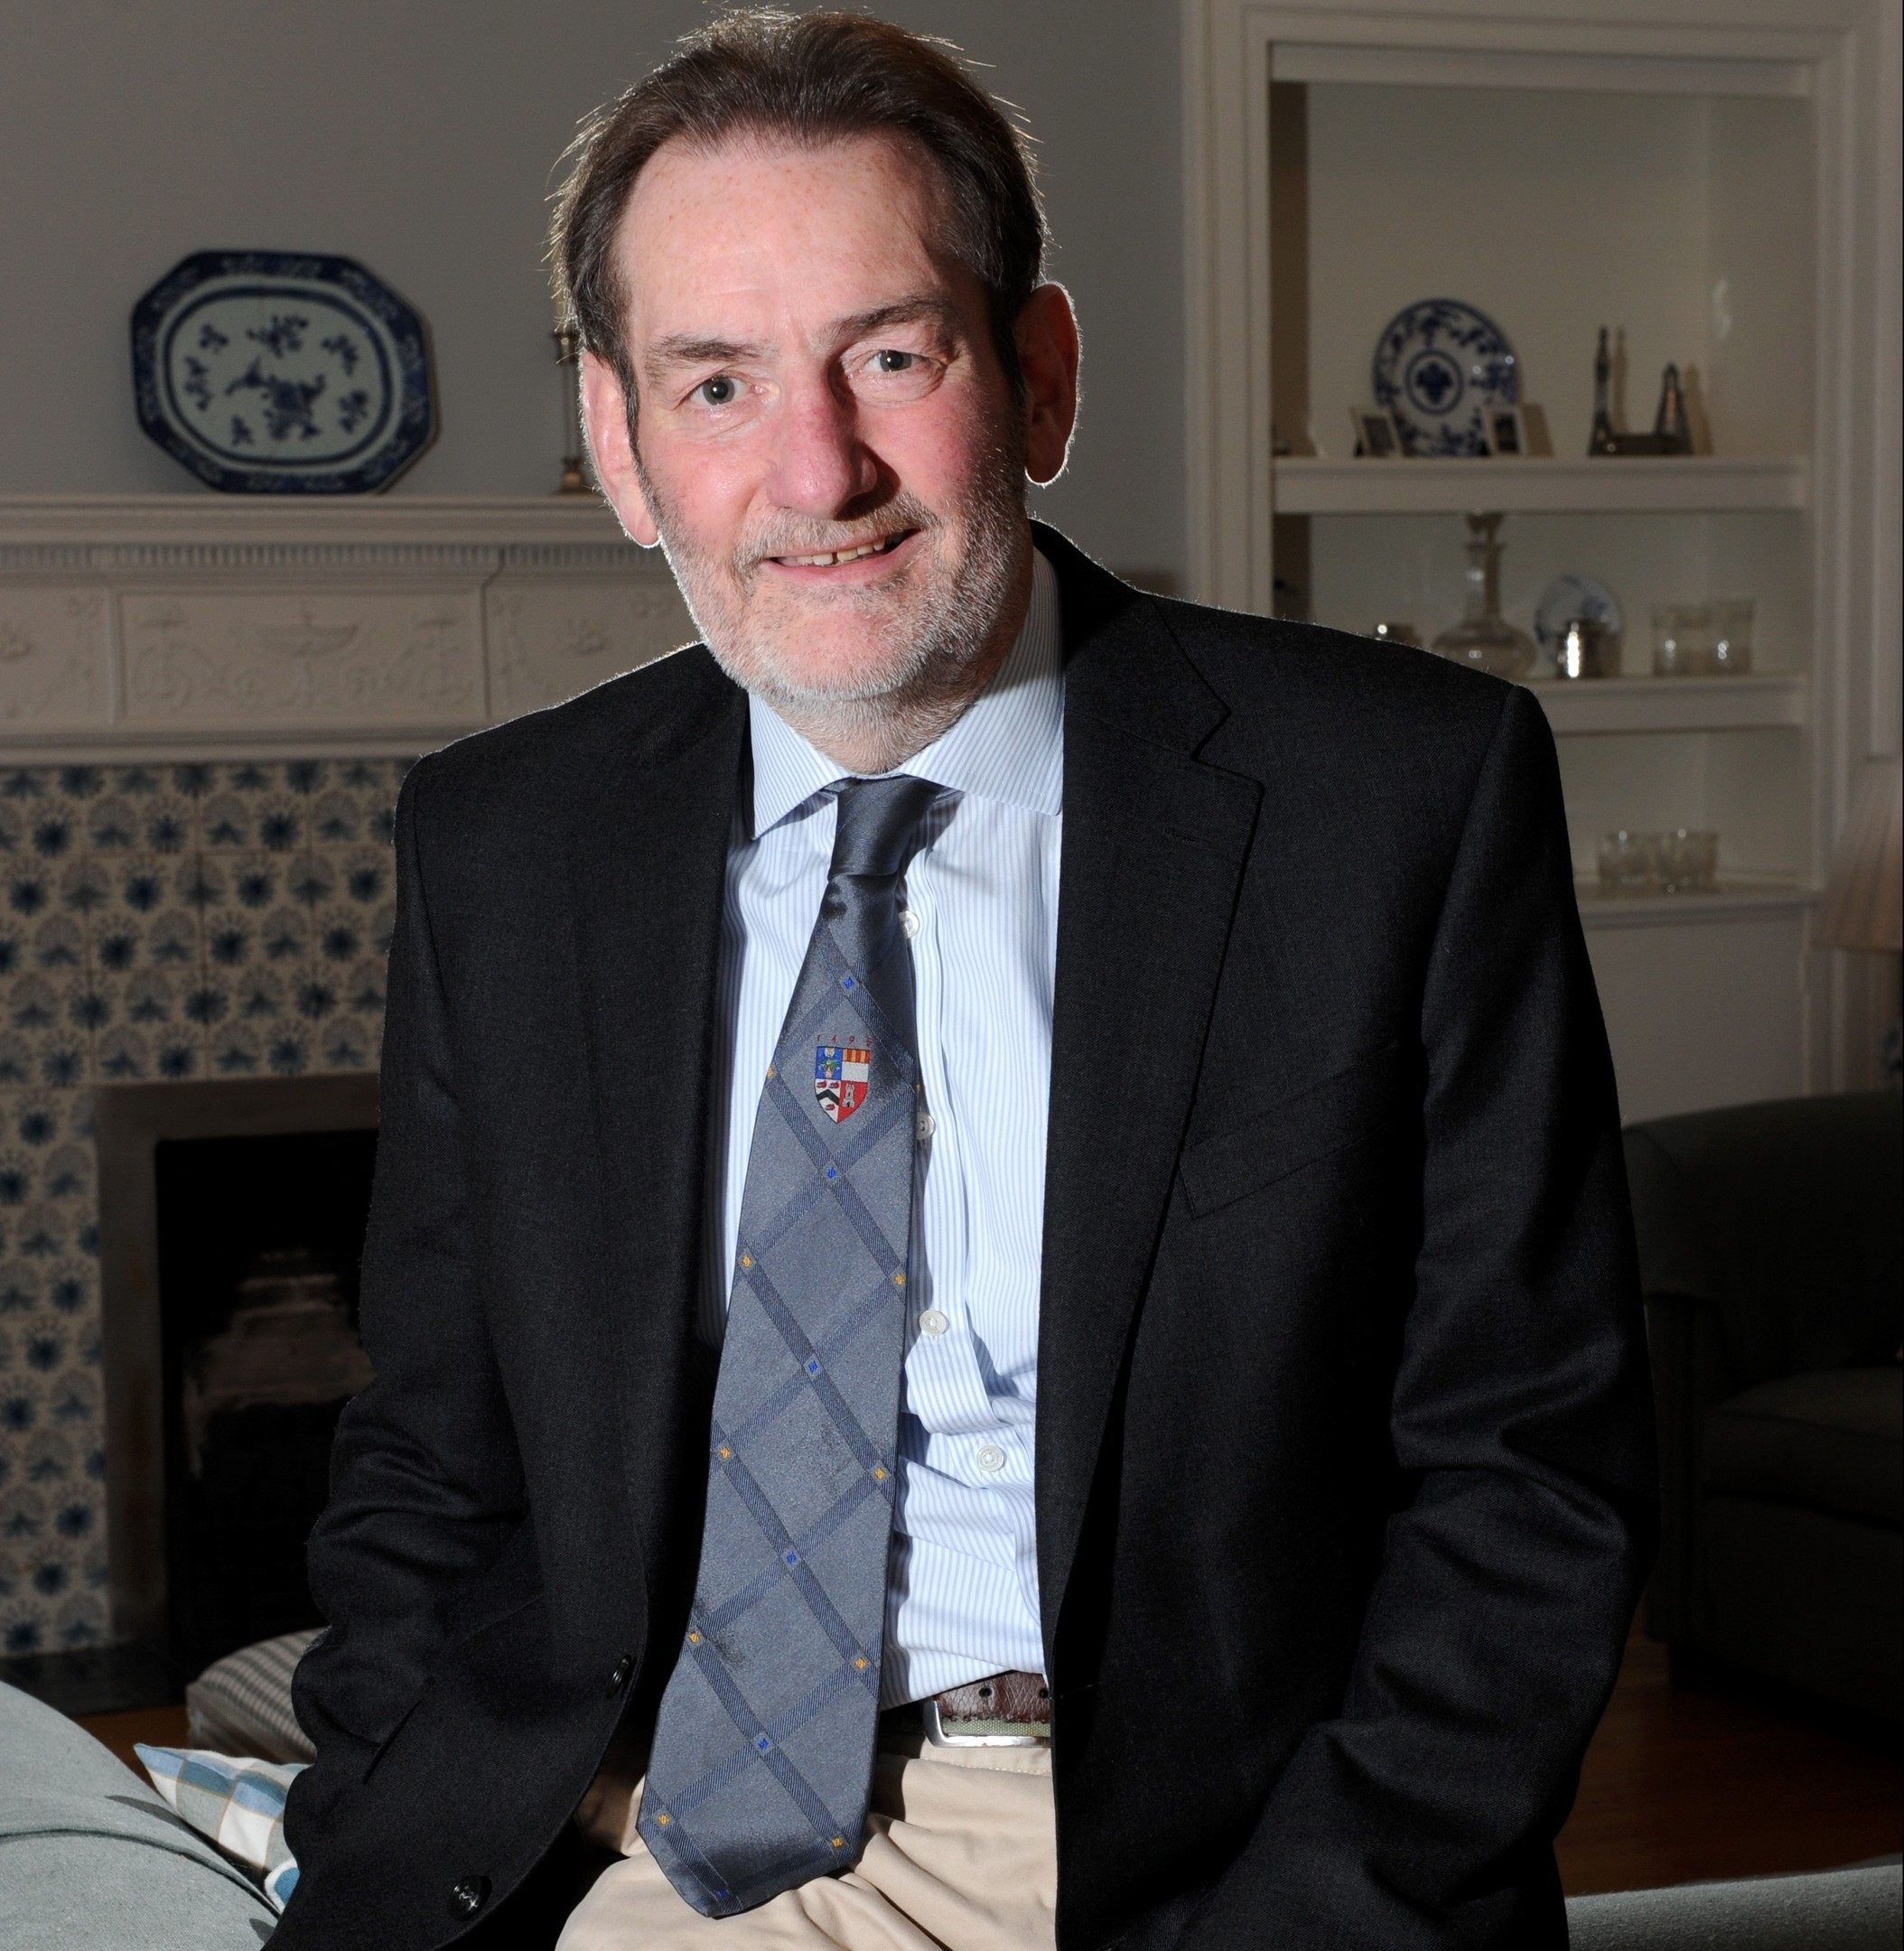 University of Aberdeen principal, Professor Sir Ian Diamond